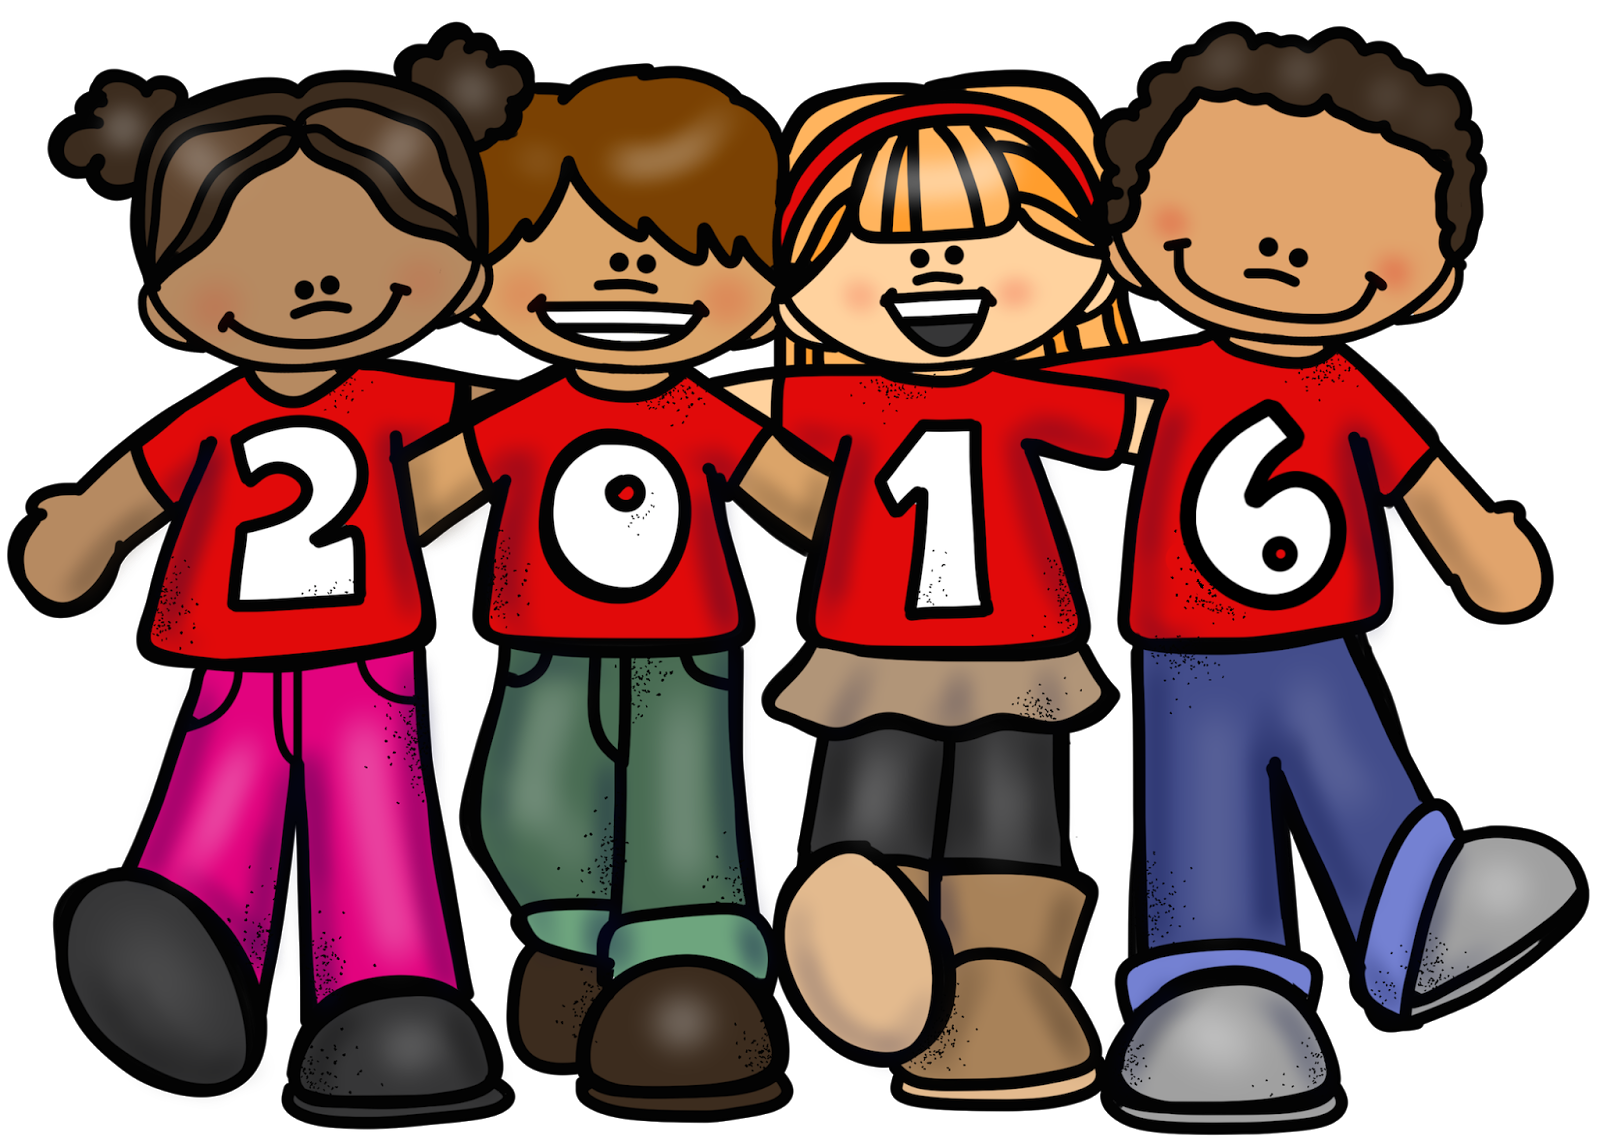 Surprise clipart bachelor. Educlips design happy new